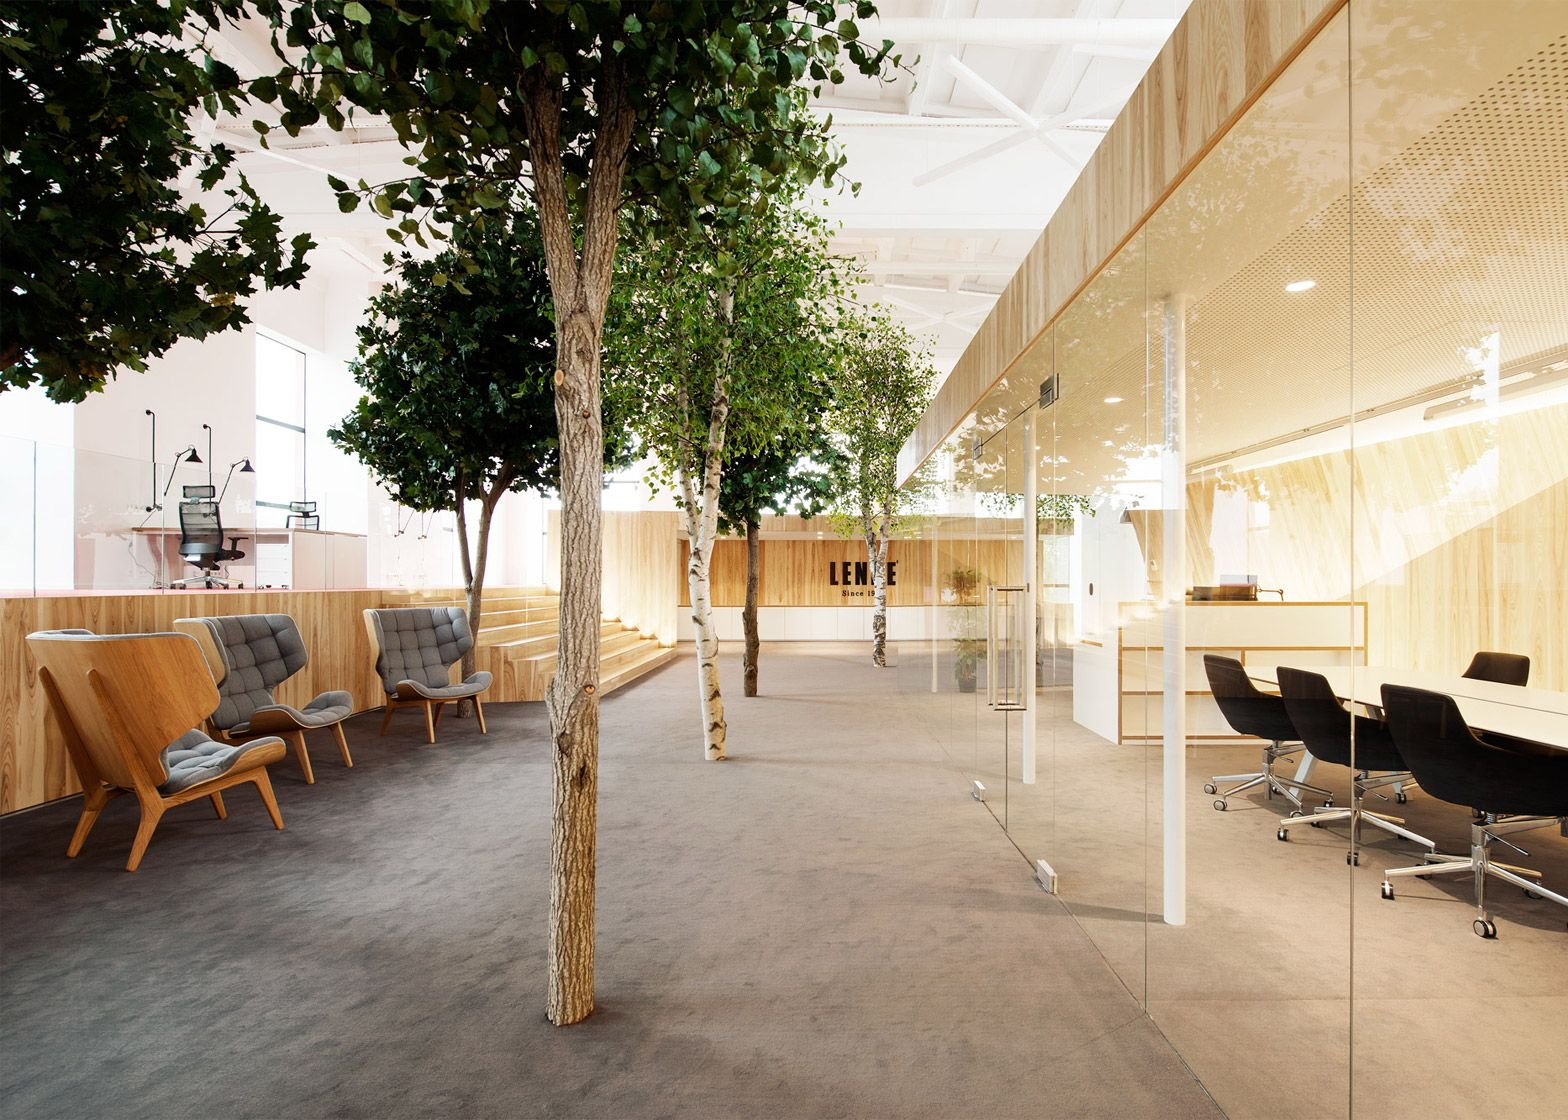 KAMP Arhitektid creates tree-filled office within former factory